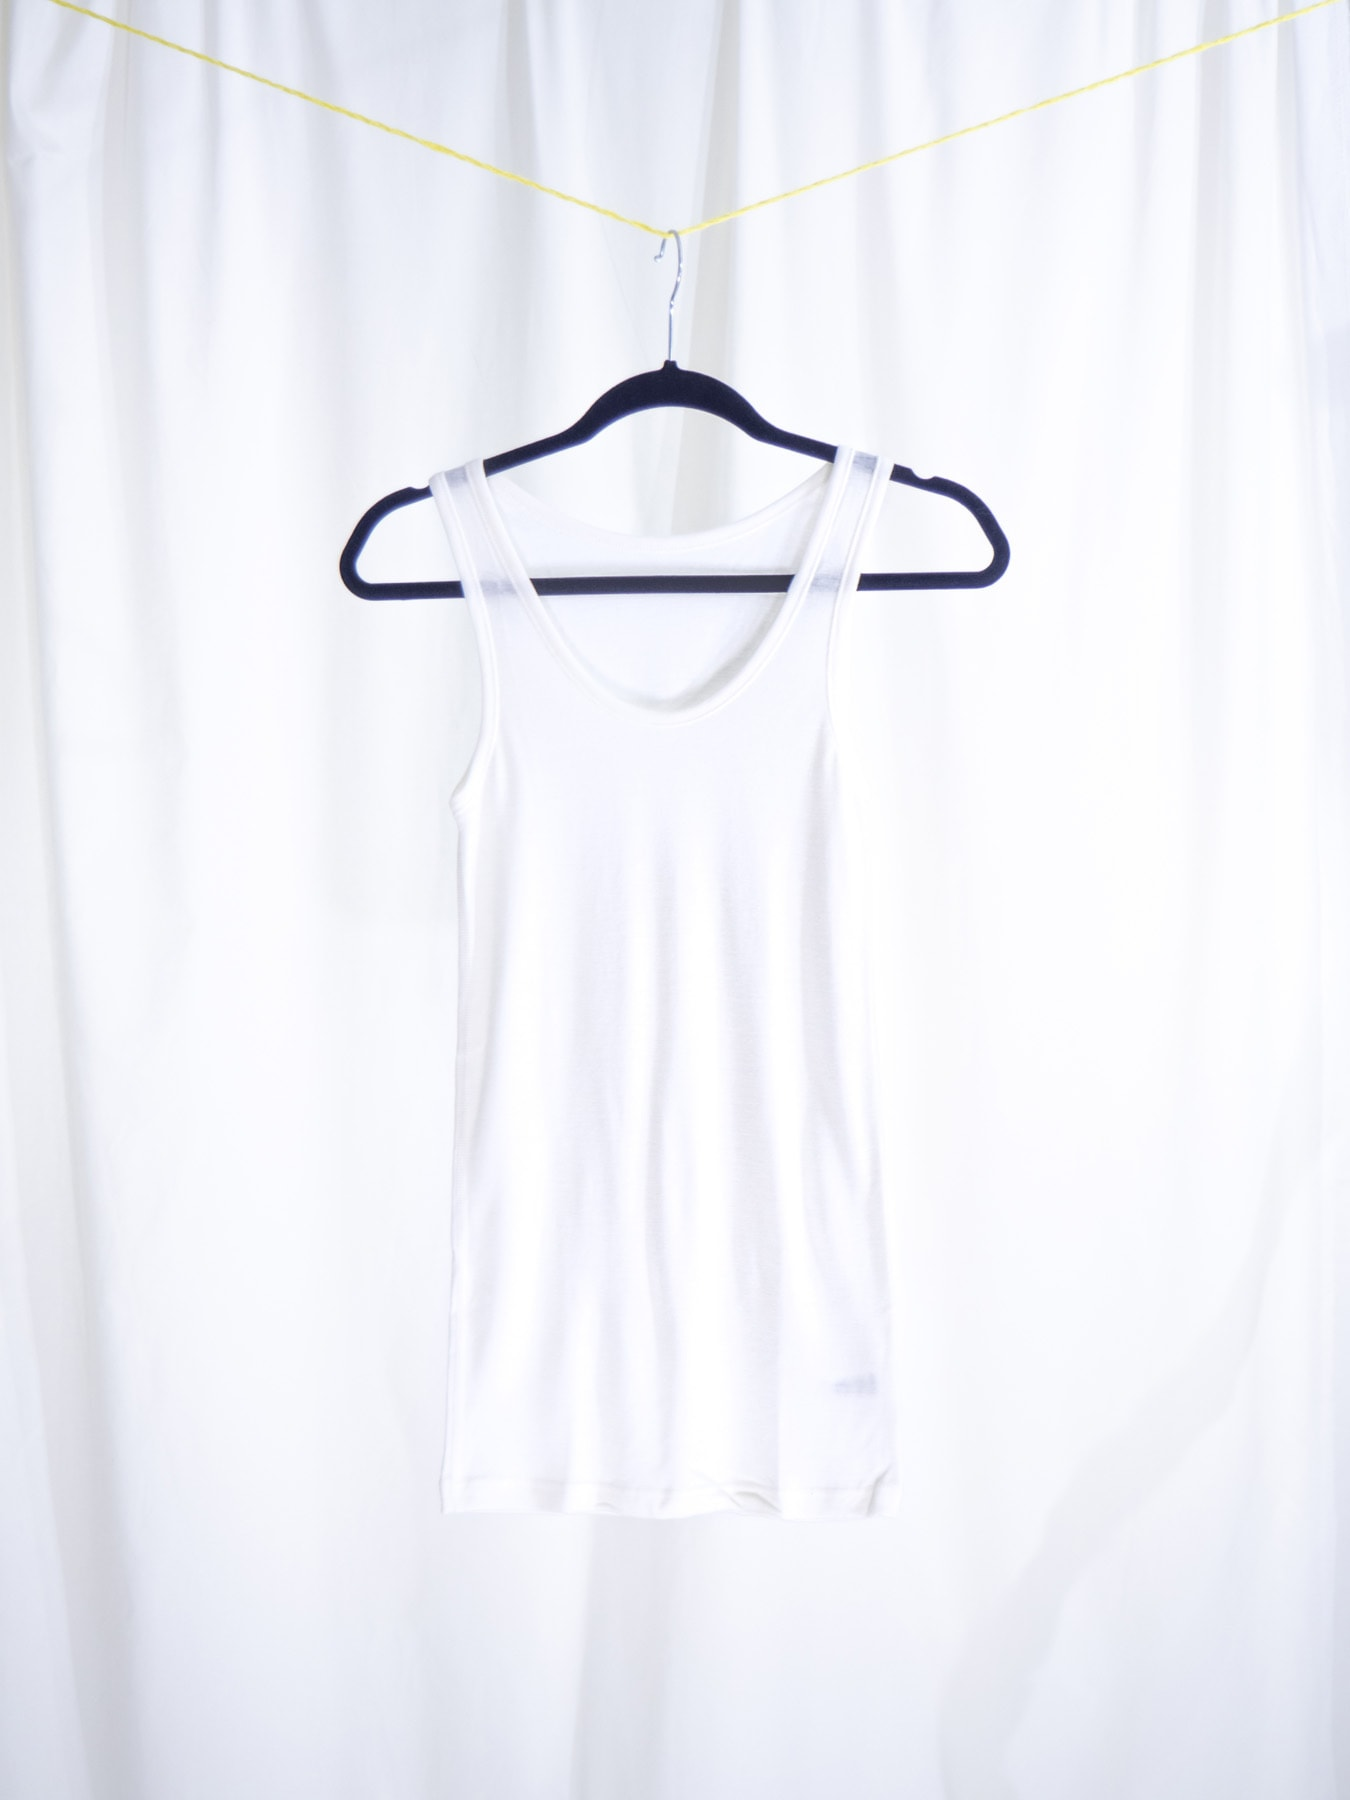 Marie undershirt white